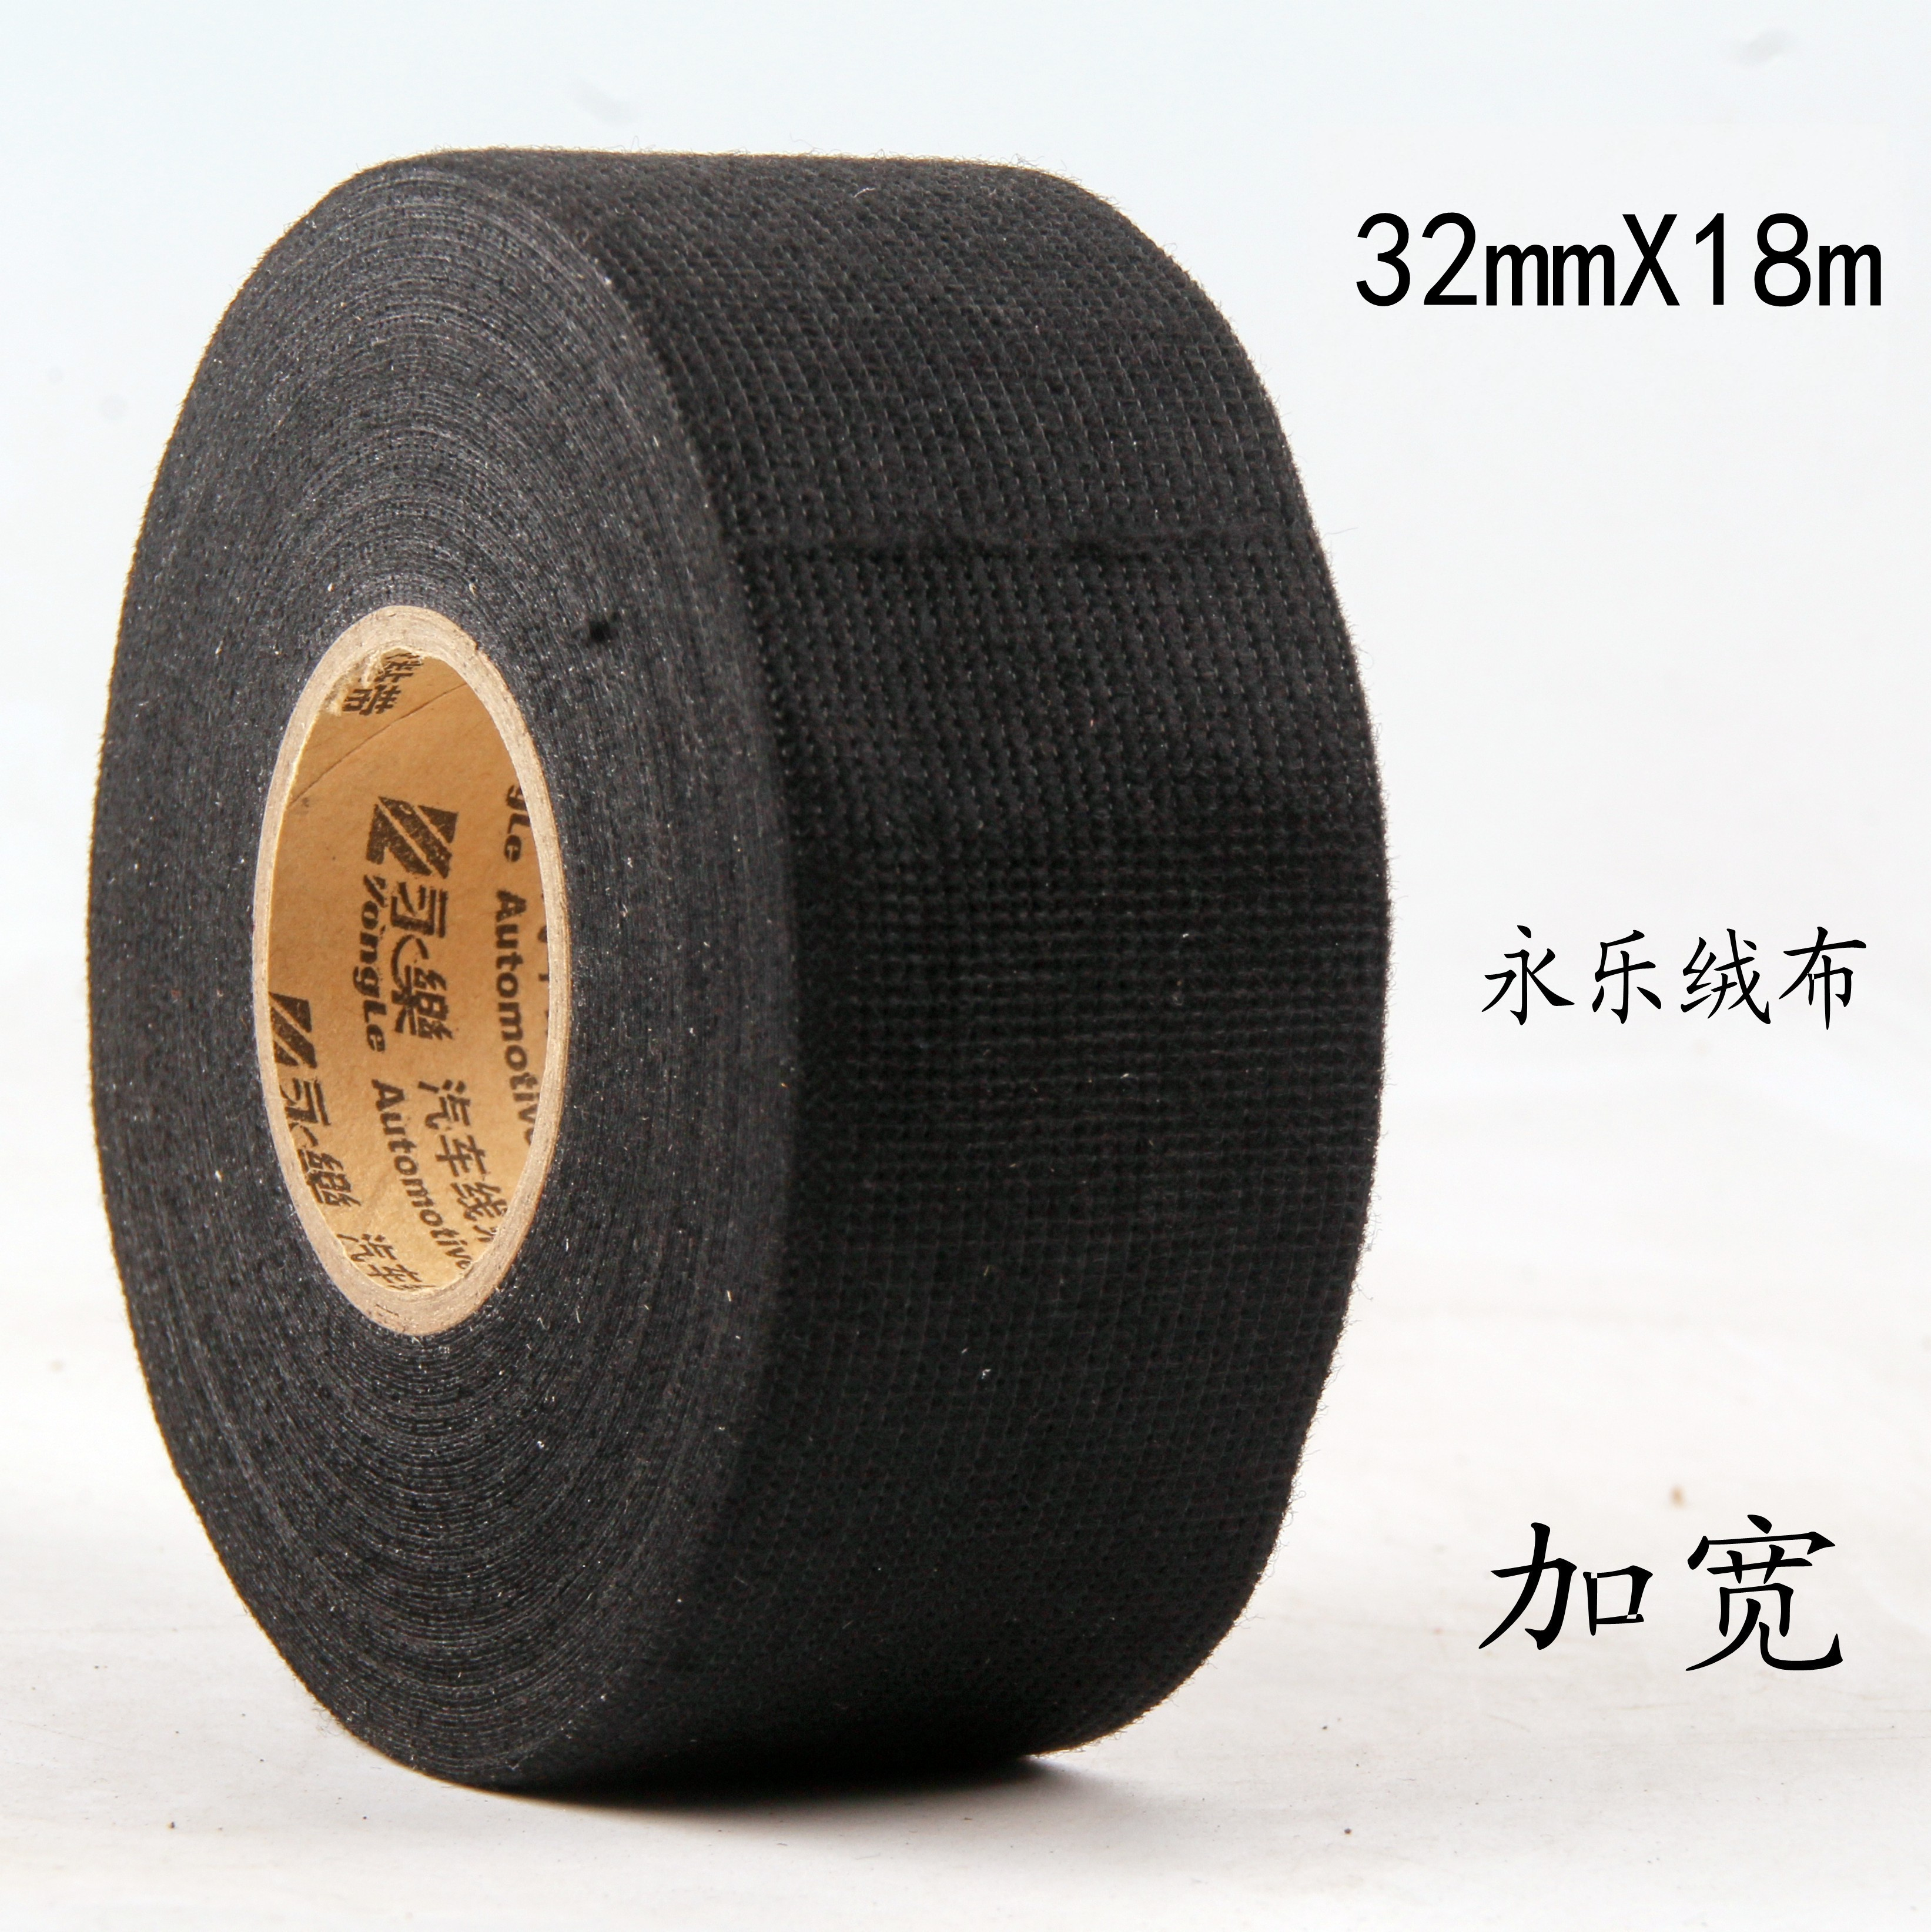 Yongle tape car harness tape flannel tape cloth tape high temperature on